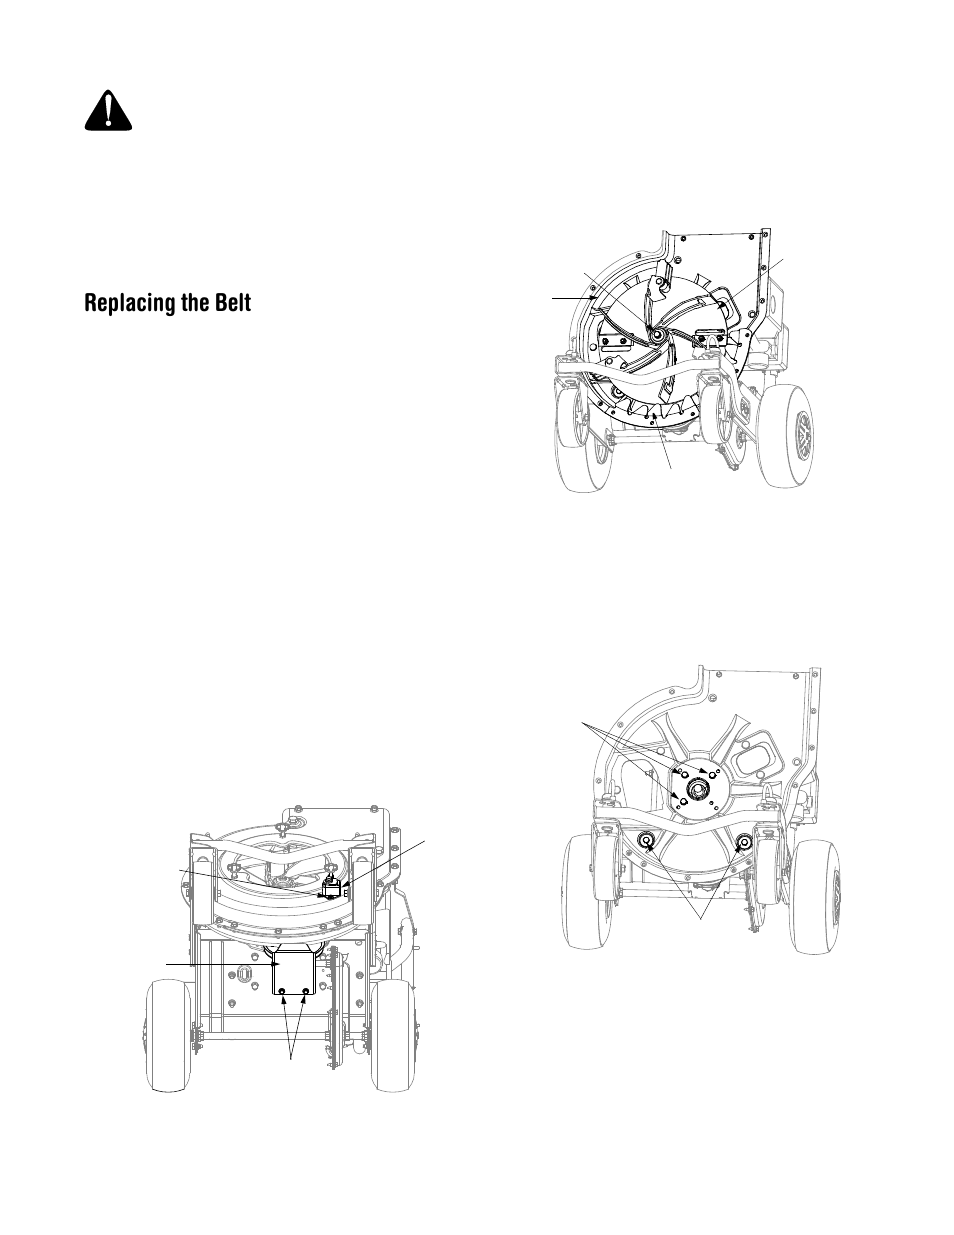 Replacing The Belt Troy Bilt Csv206 User Manual Page 11 14